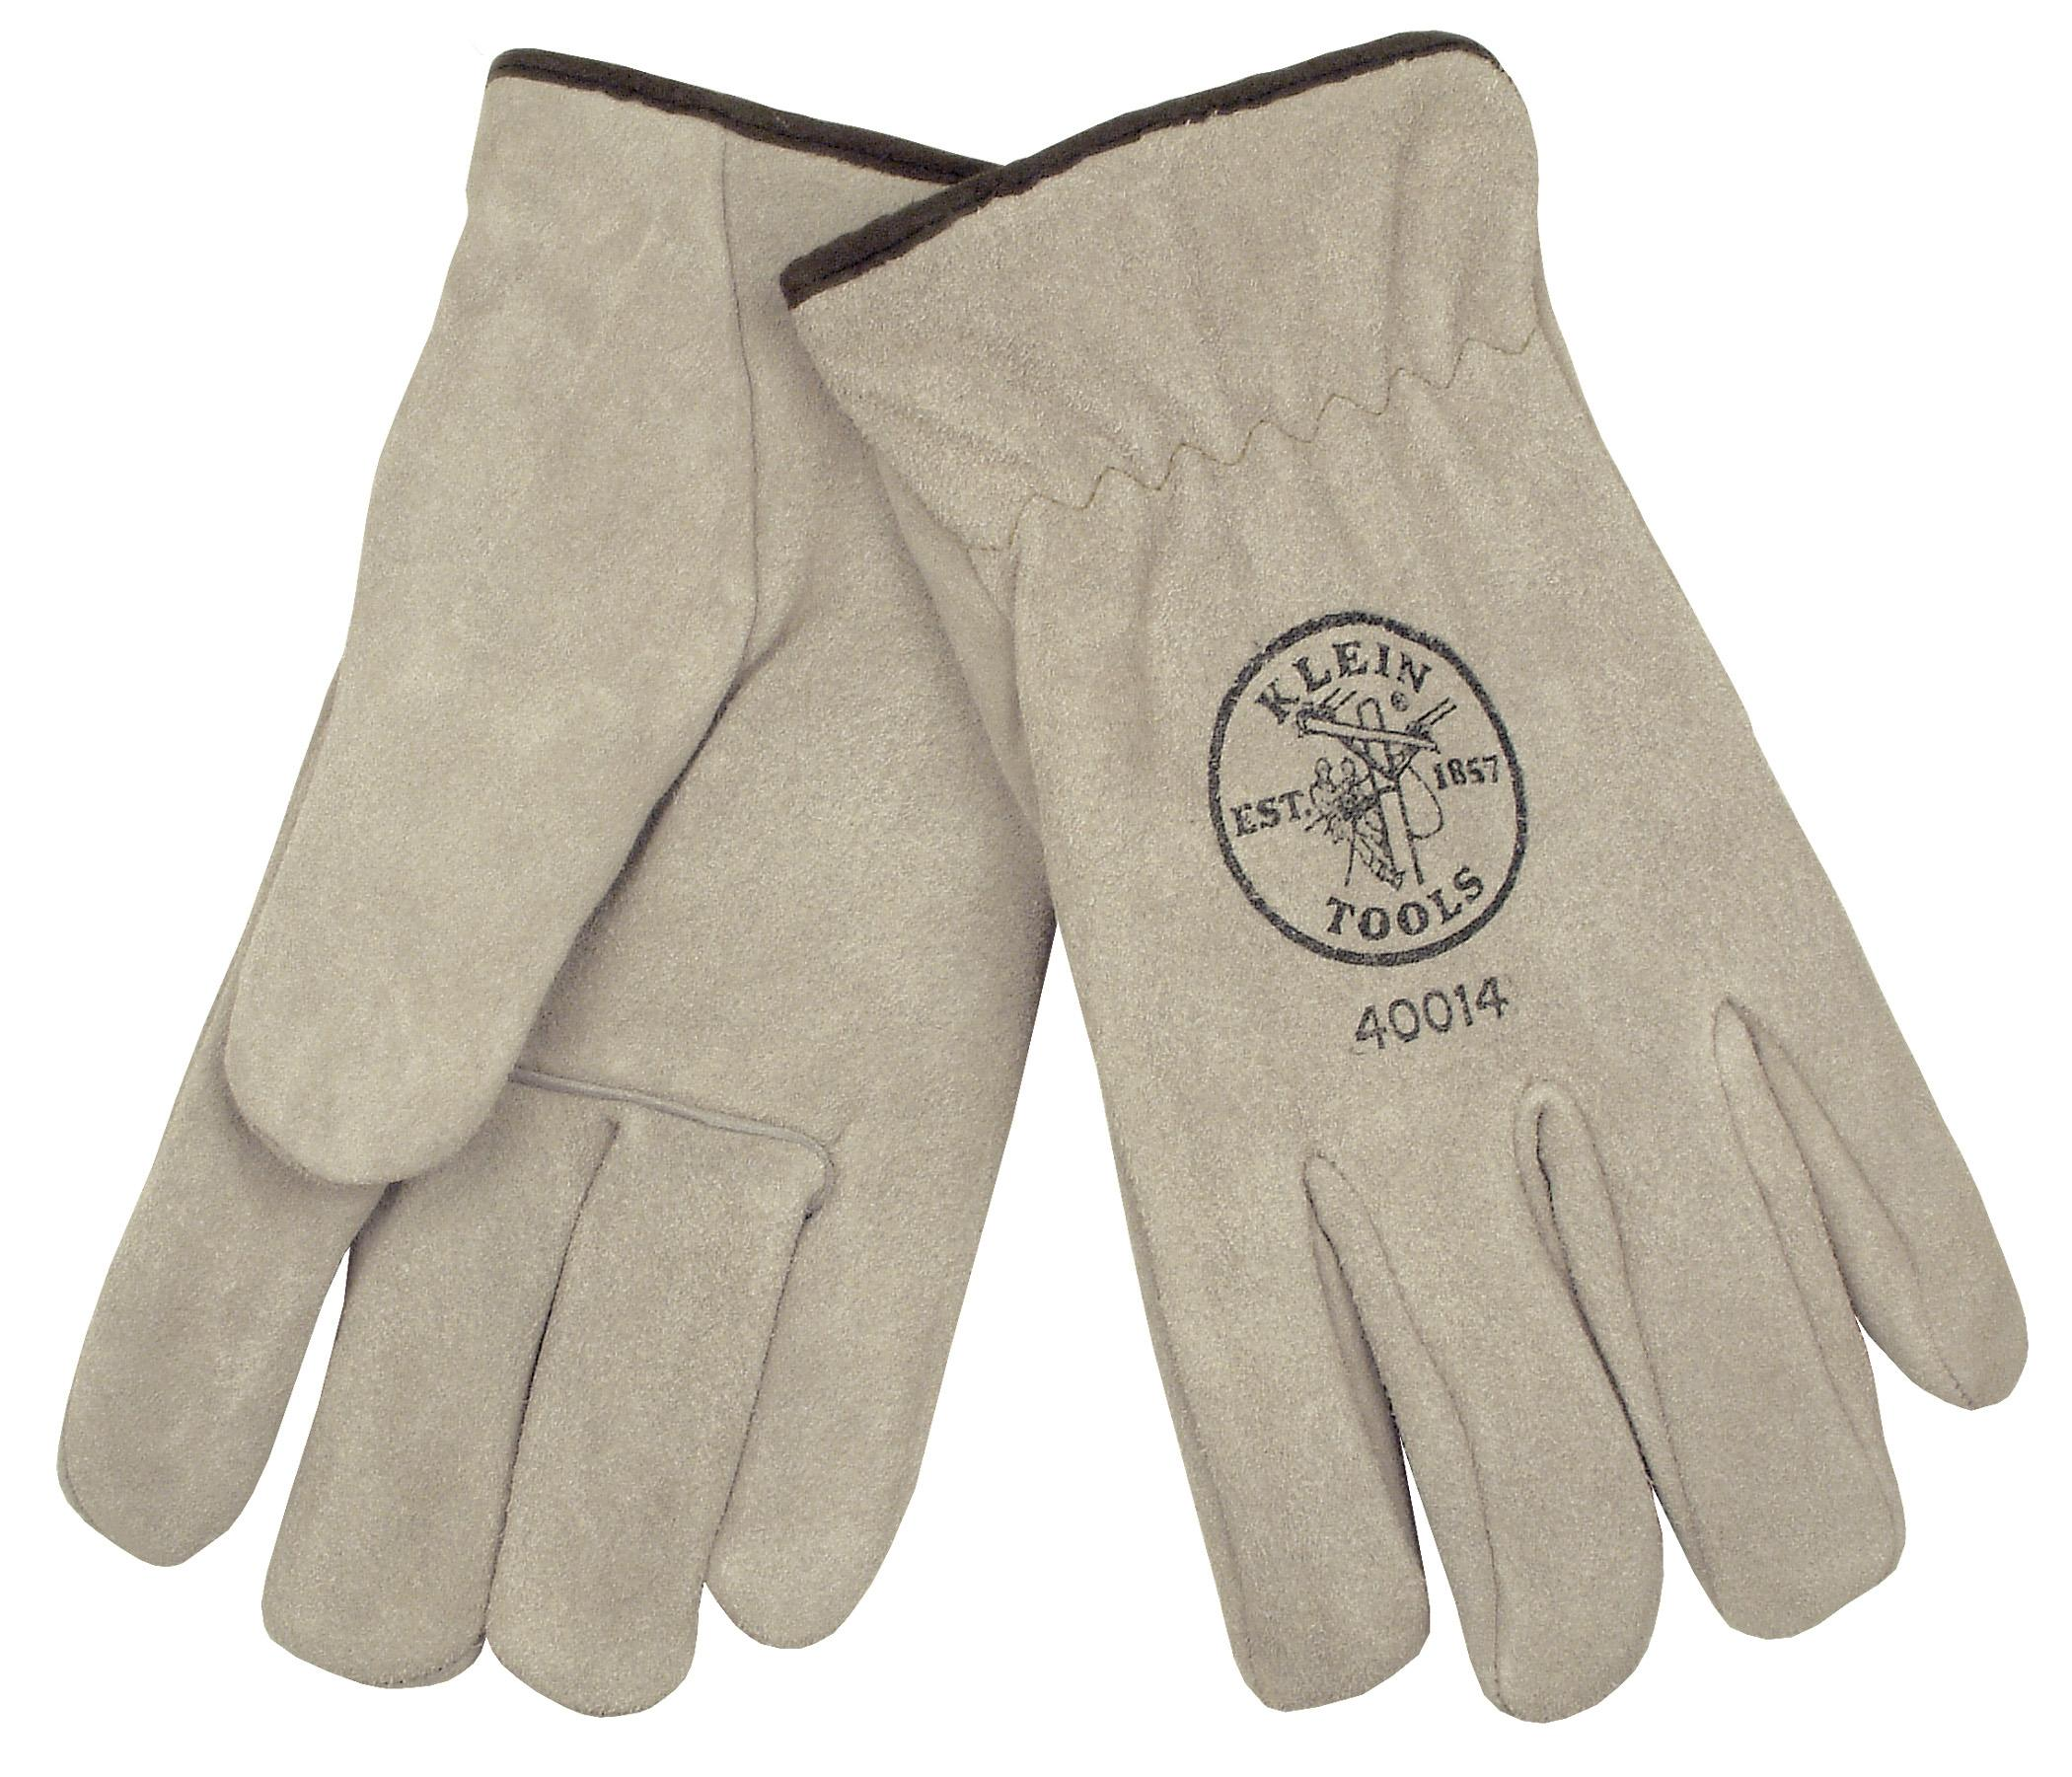 Suede Cowhide Driver s Gloves   Lined 40014